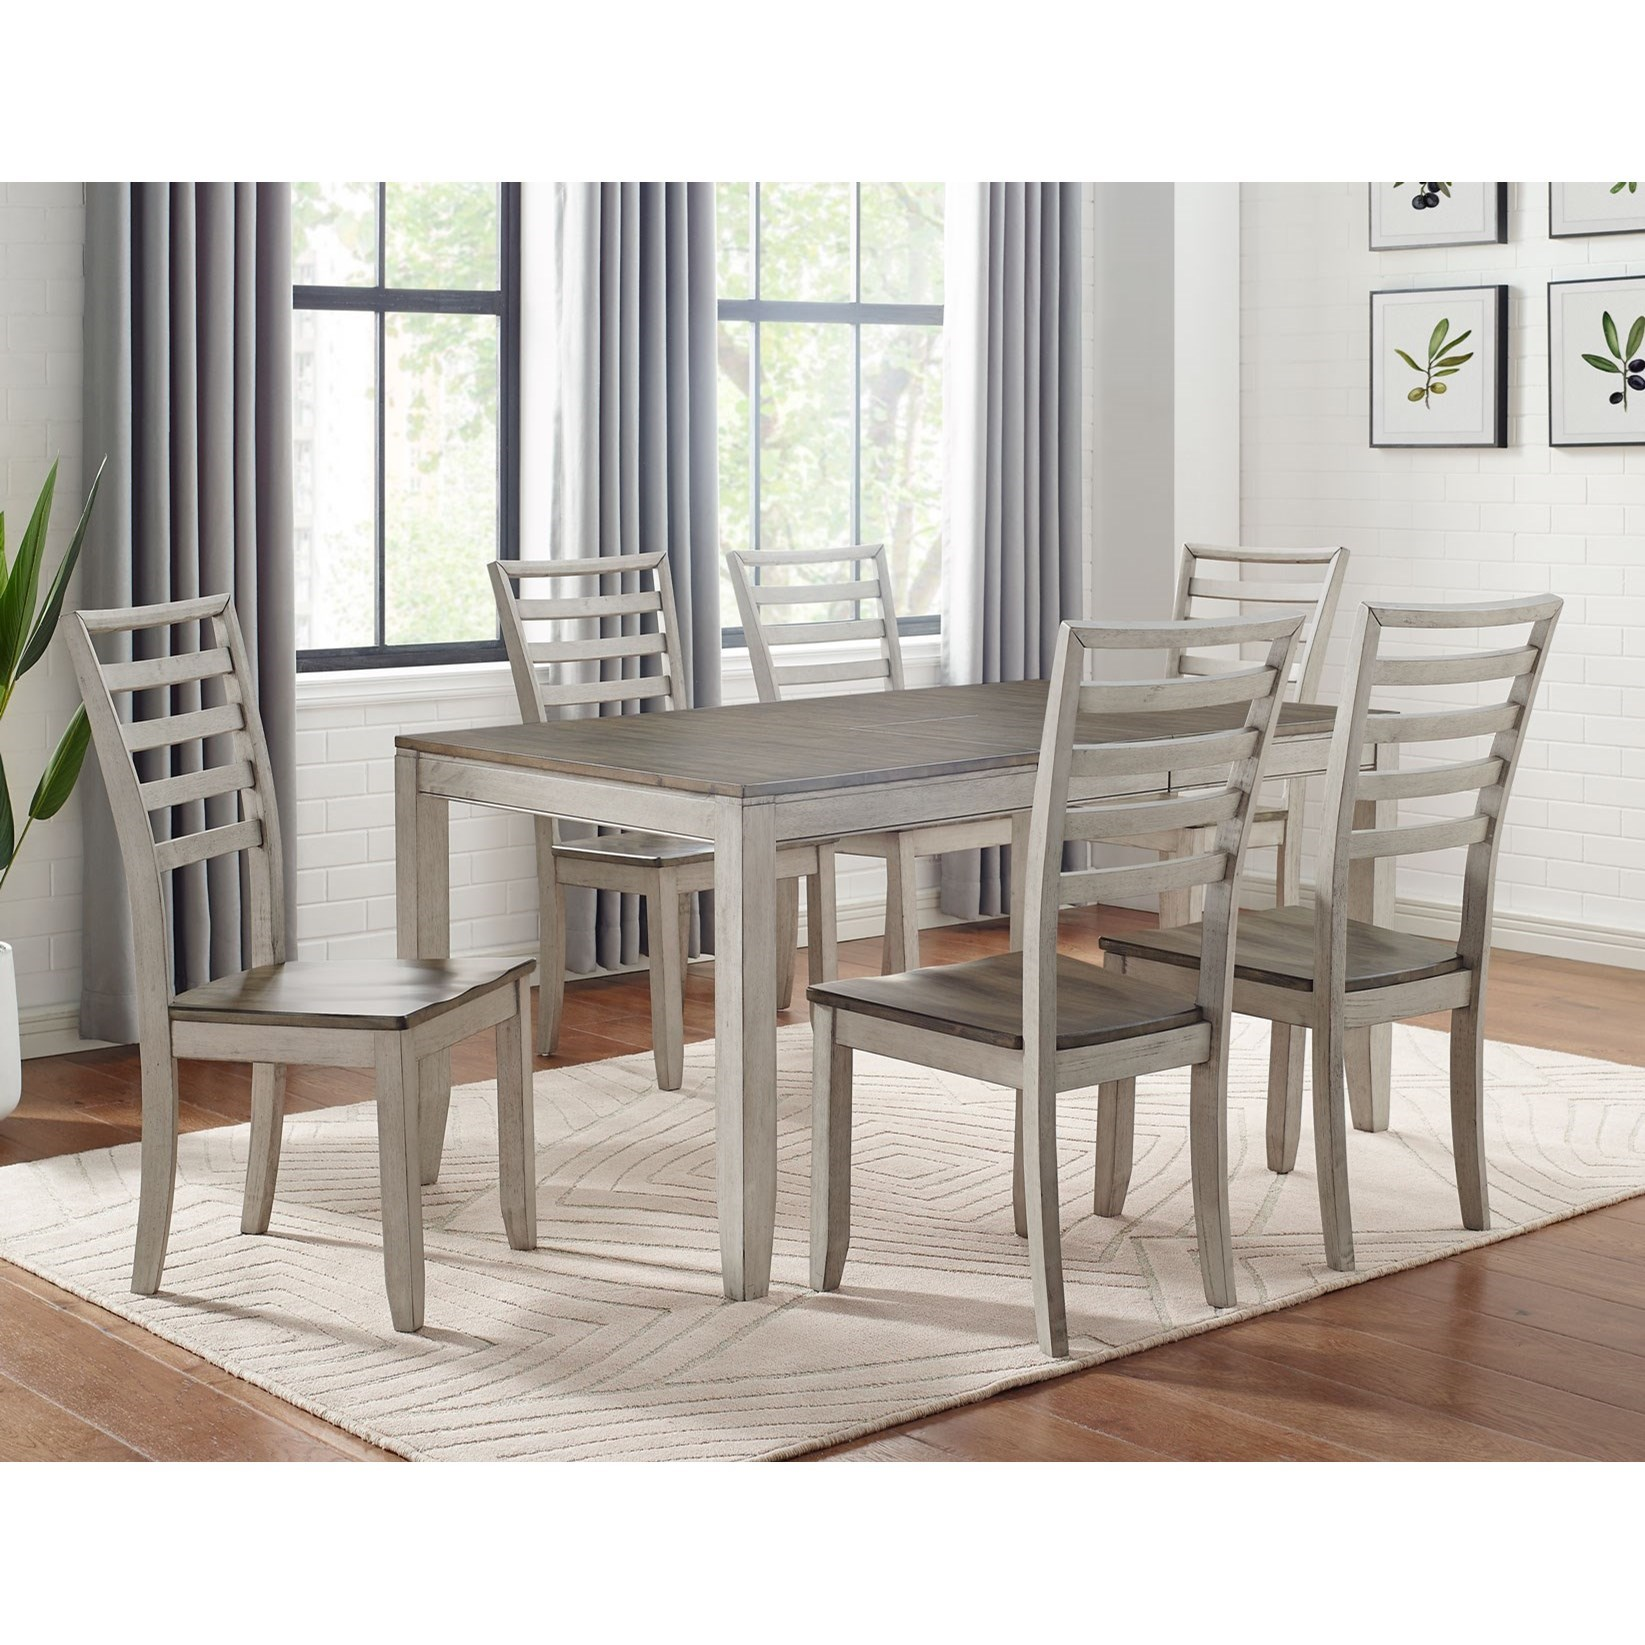 Abacus 7-Piece Table and Chair Set by Steve Silver at Nassau Furniture and Mattress